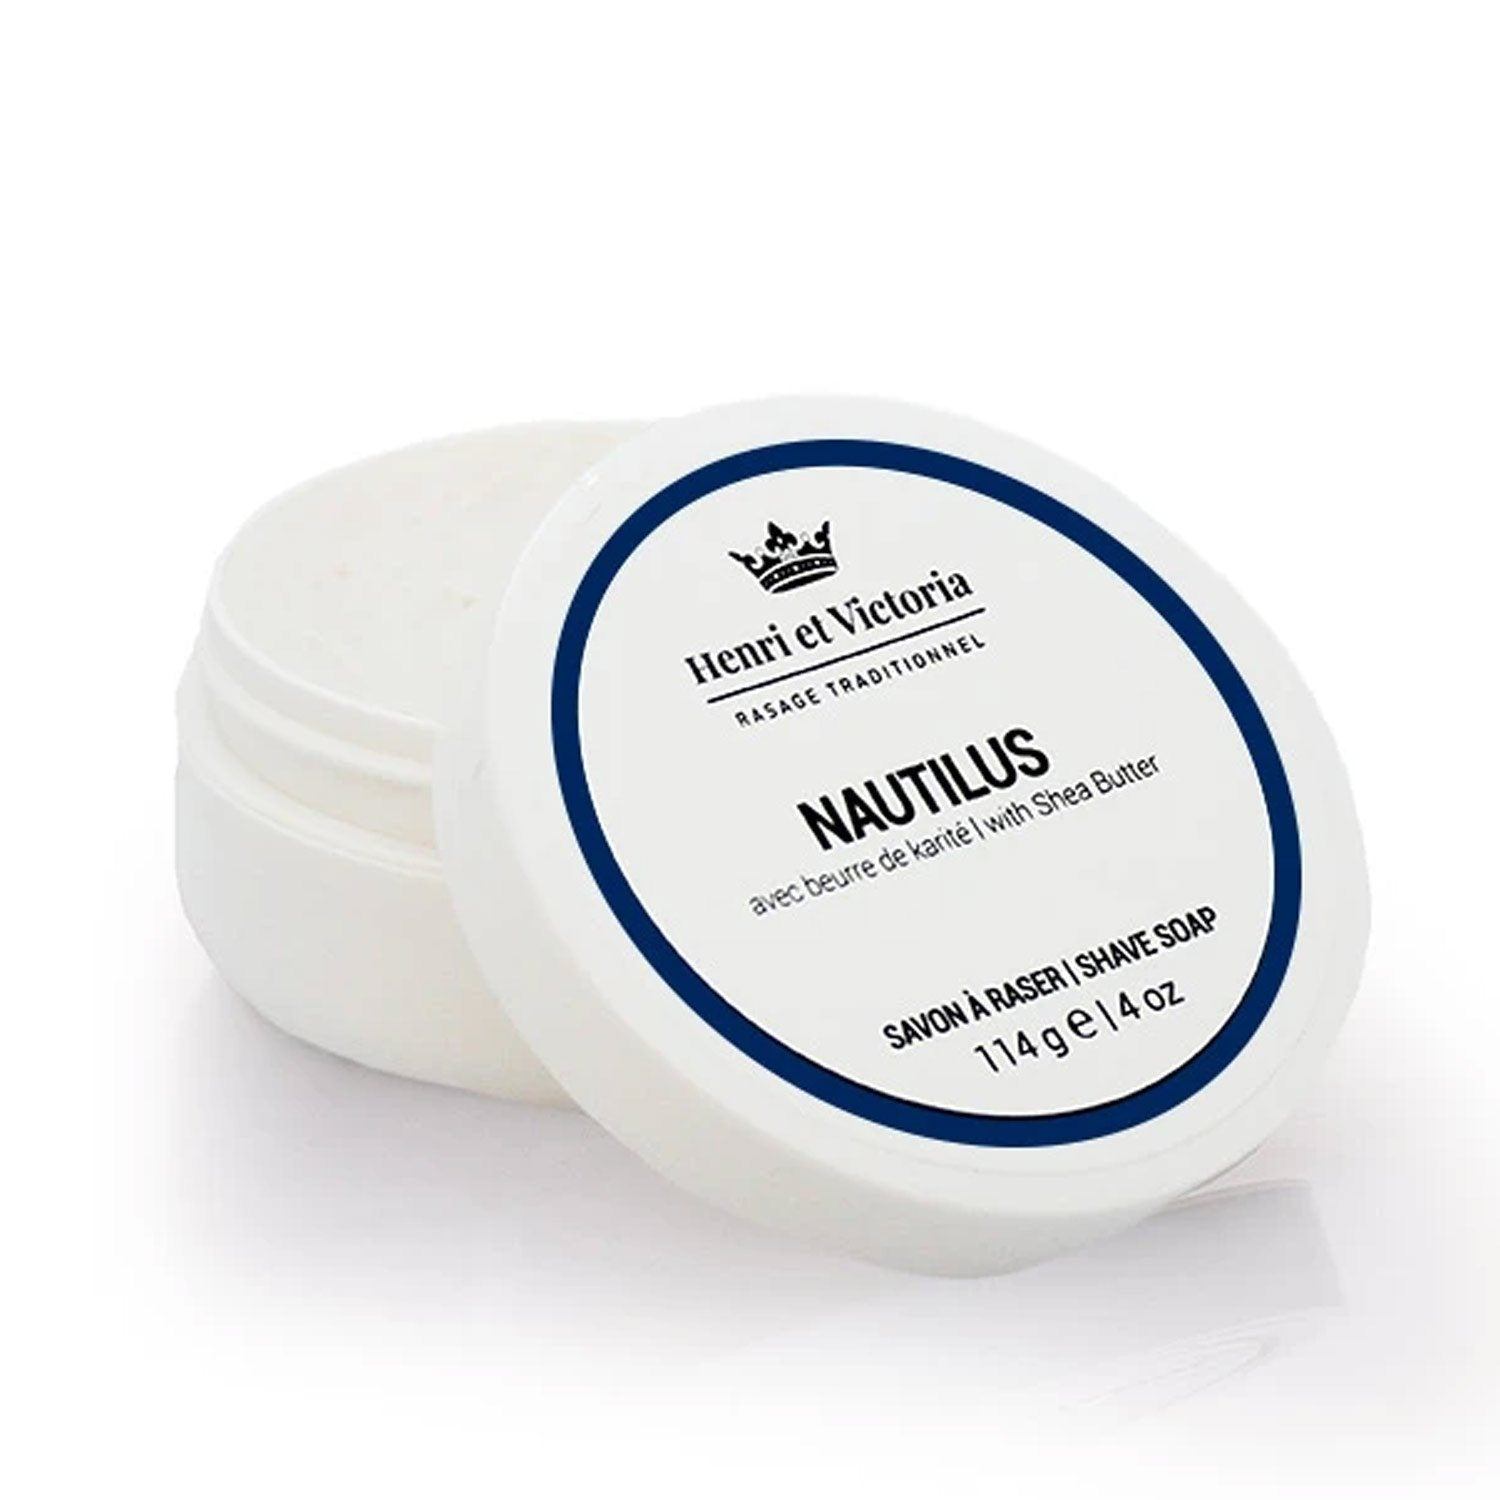 Henri et Victoria Shave Soap Grooming Supplies Henri et Victoria Nautilus - Shaving Soap